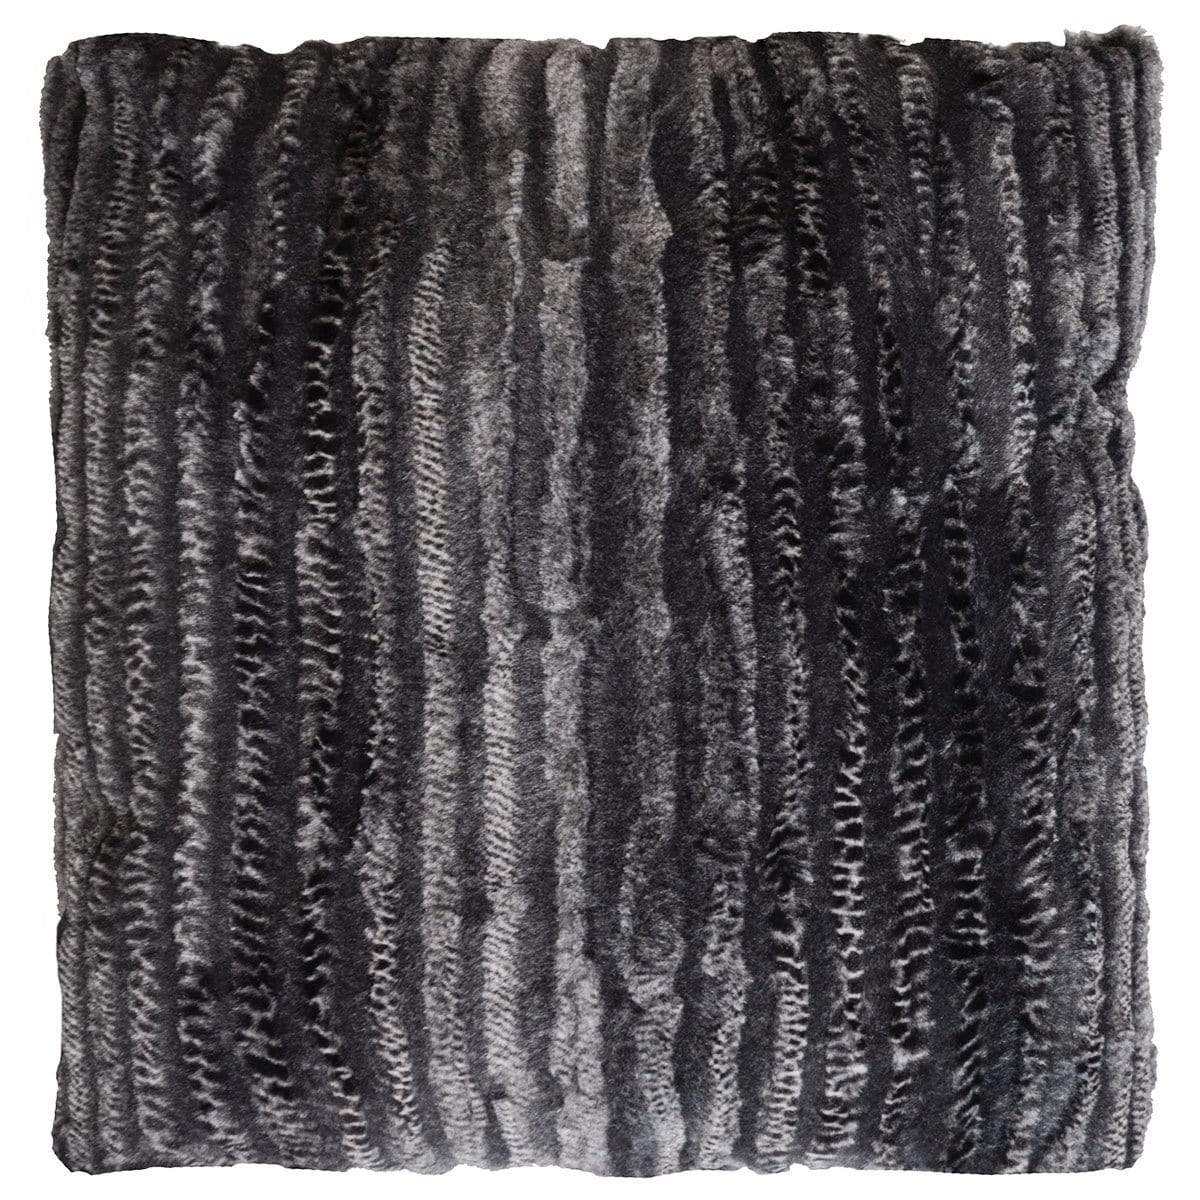 Pillow Sham - Luxury Faux Fur in Rattle N Shake